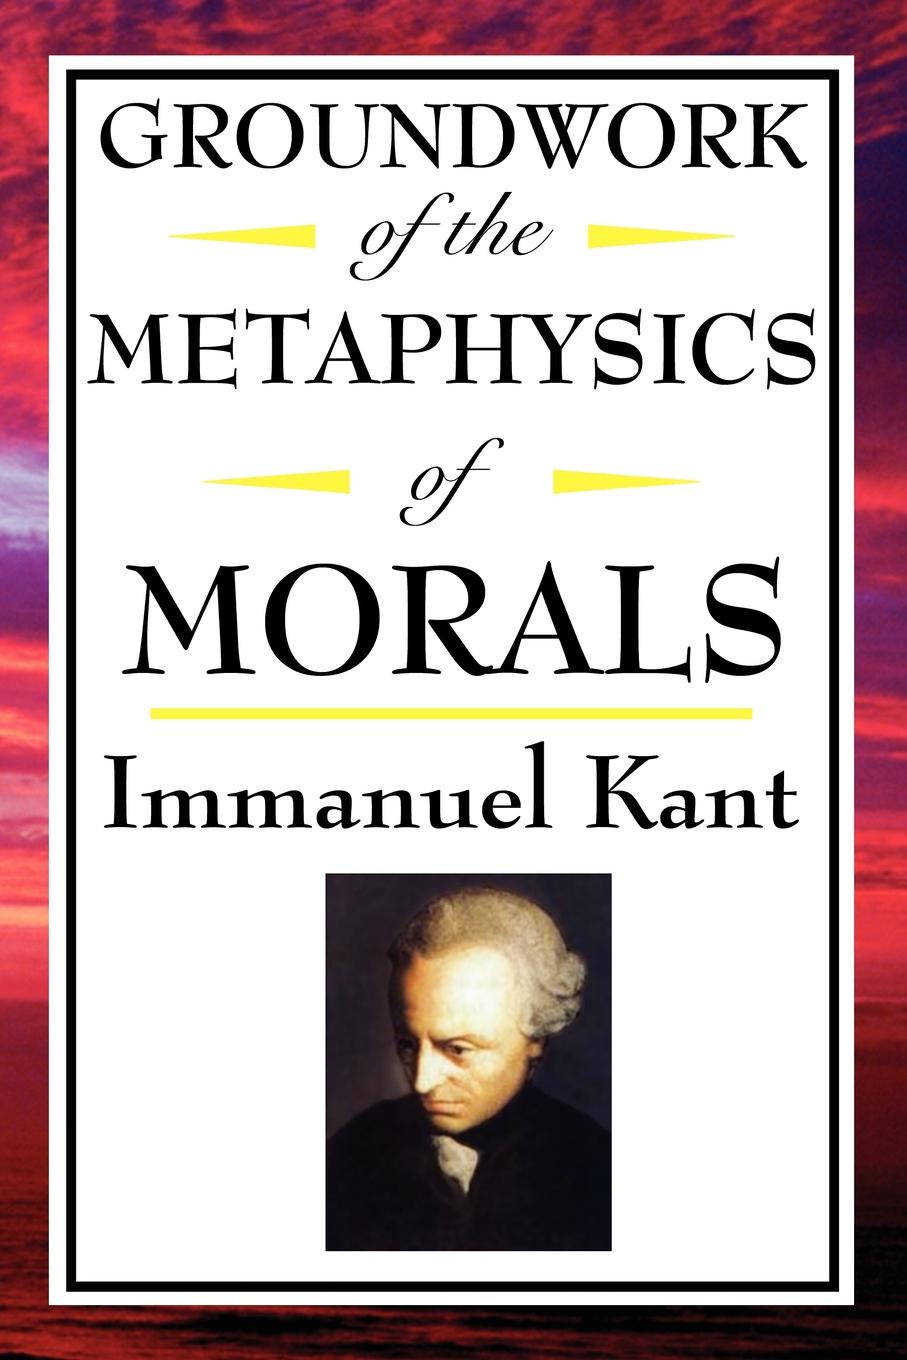 И. Кант Kant. Groundwork of the Metaphysics of Morals timothy pickavance the atlas of reality a comprehensive guide to metaphysics